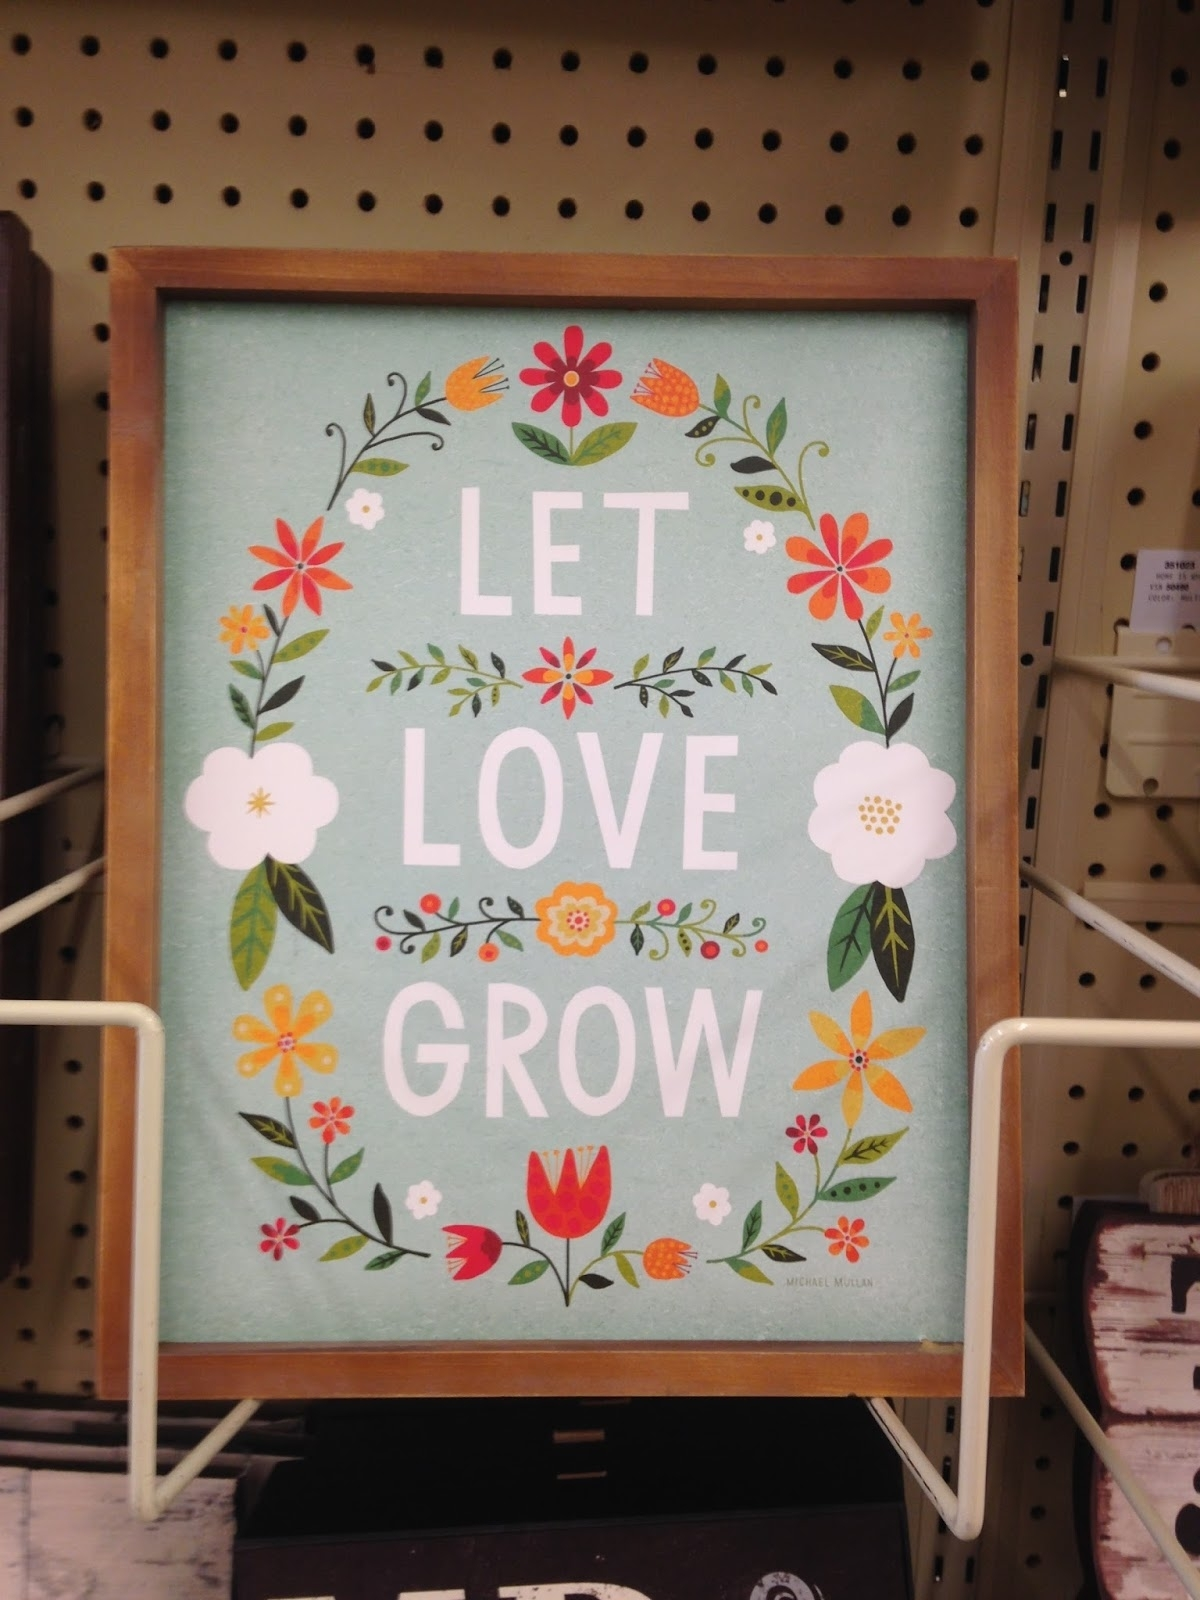 Let's Go Shopping} Pier One, Joann Fabrics, Homegoods And Hobby Regarding Recent Joann Fabric Wall Art (View 10 of 15)